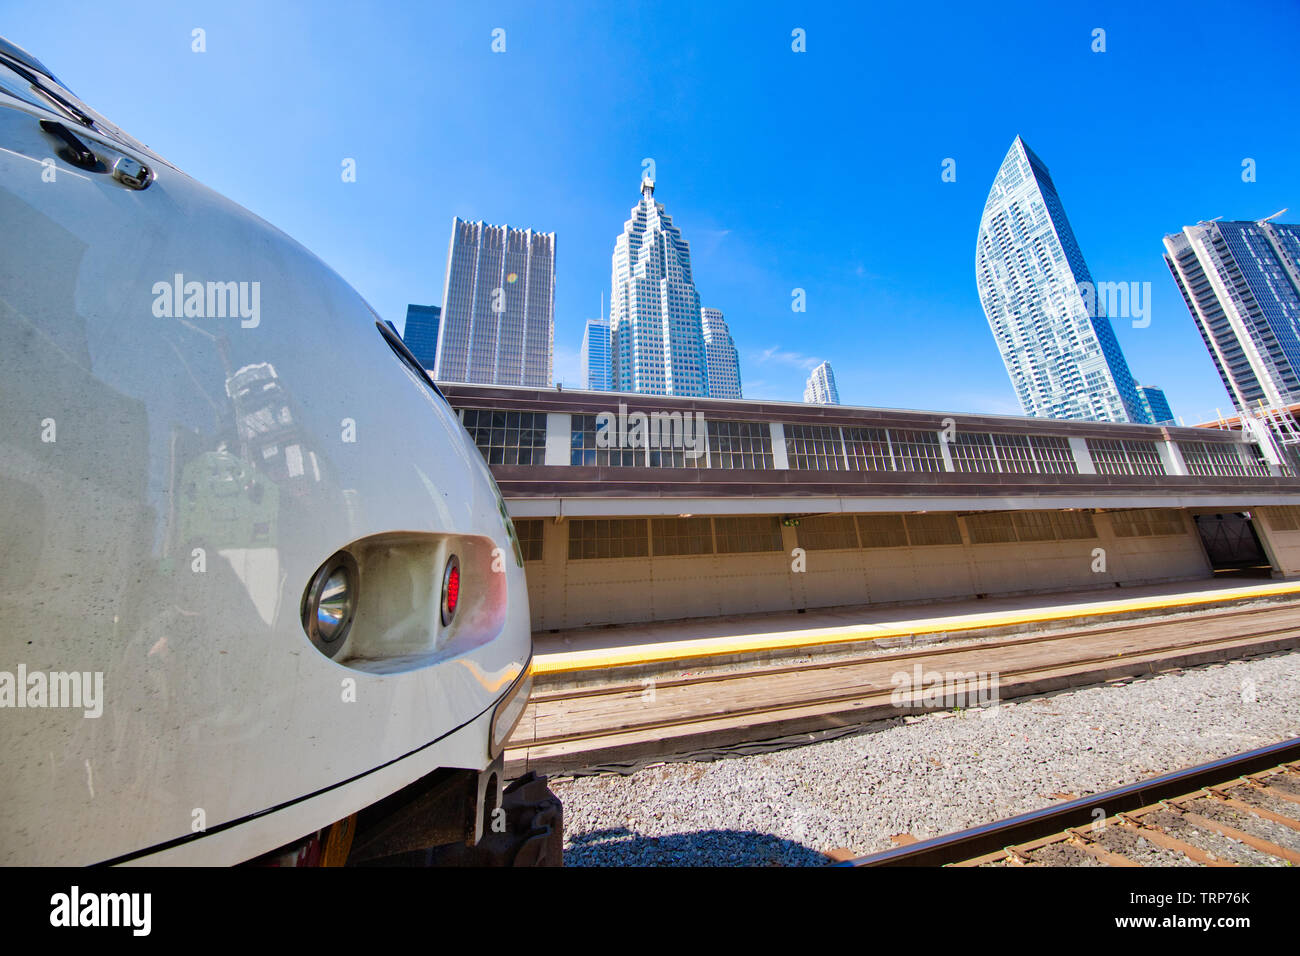 Toronto Go Train arriving at a platform at Union station terminal - Stock Image